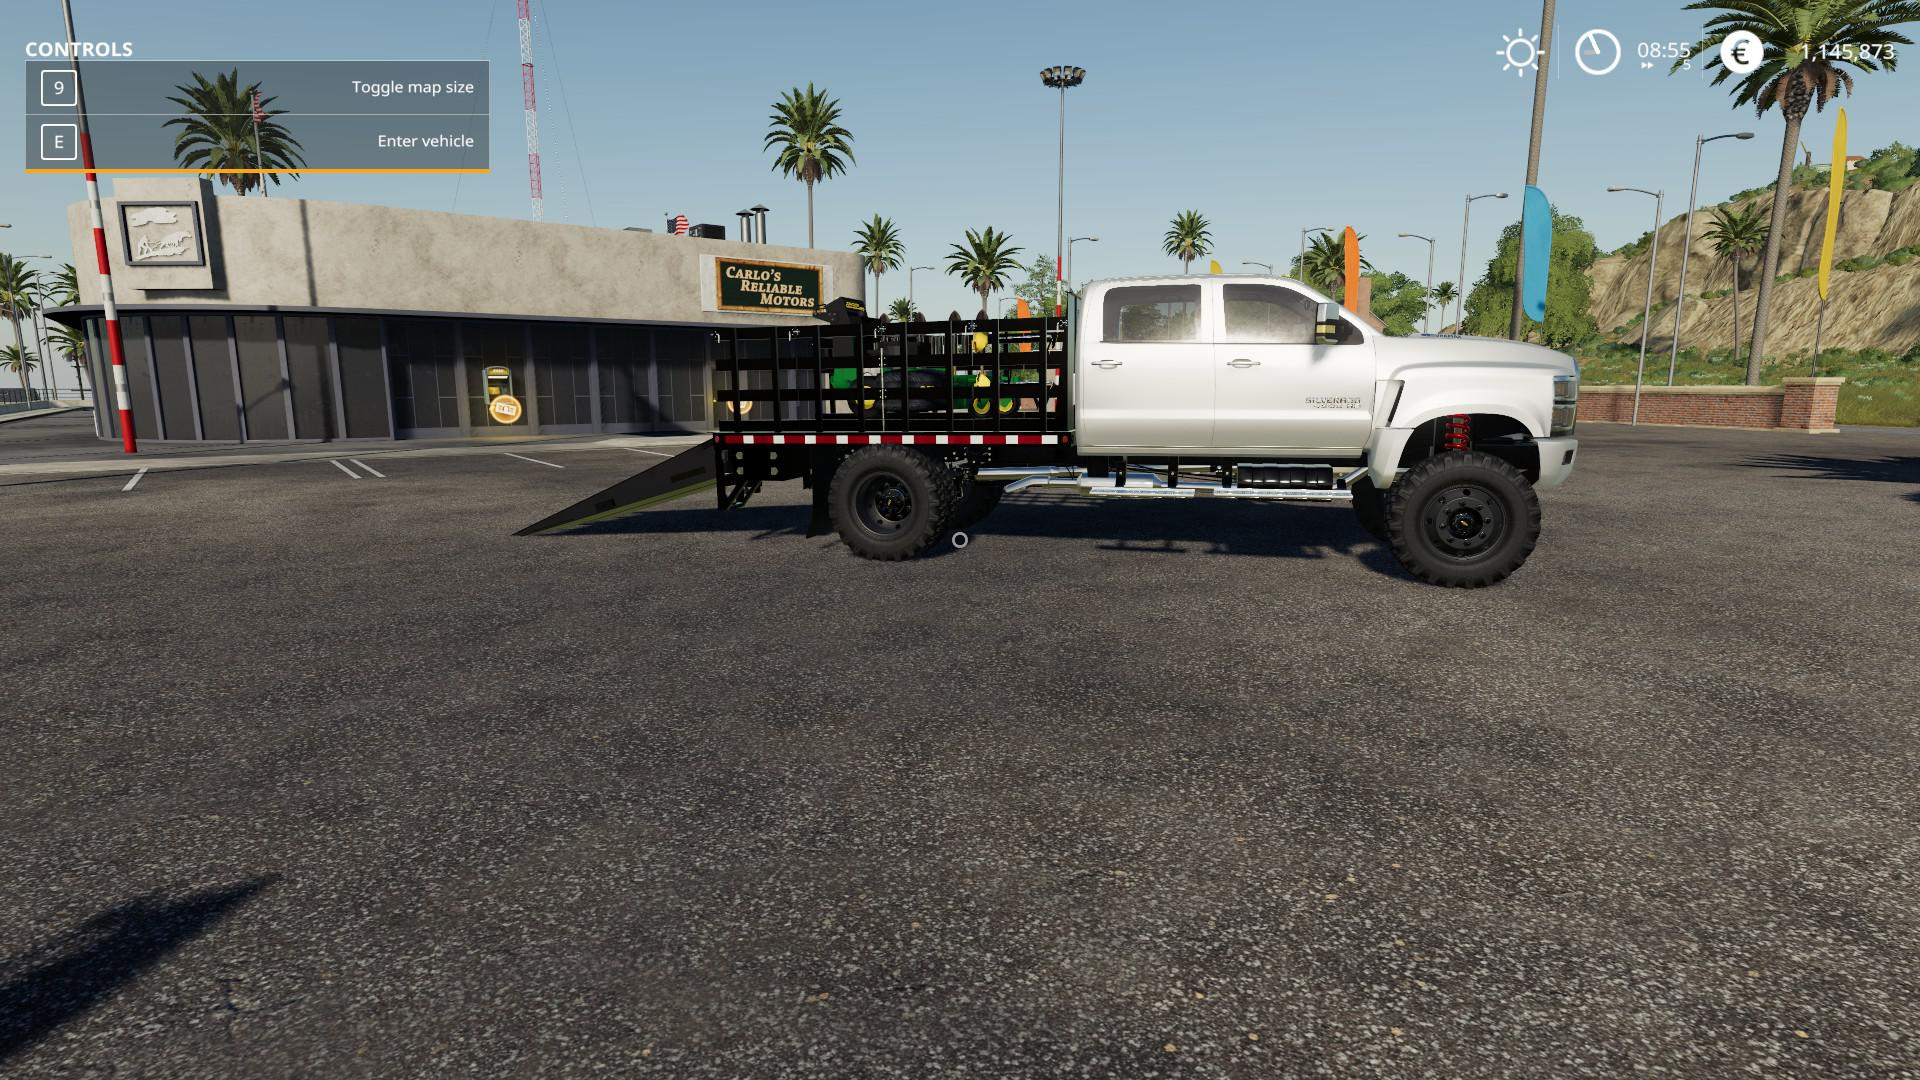 Chevy 4500 Lawn care edit v 1.2